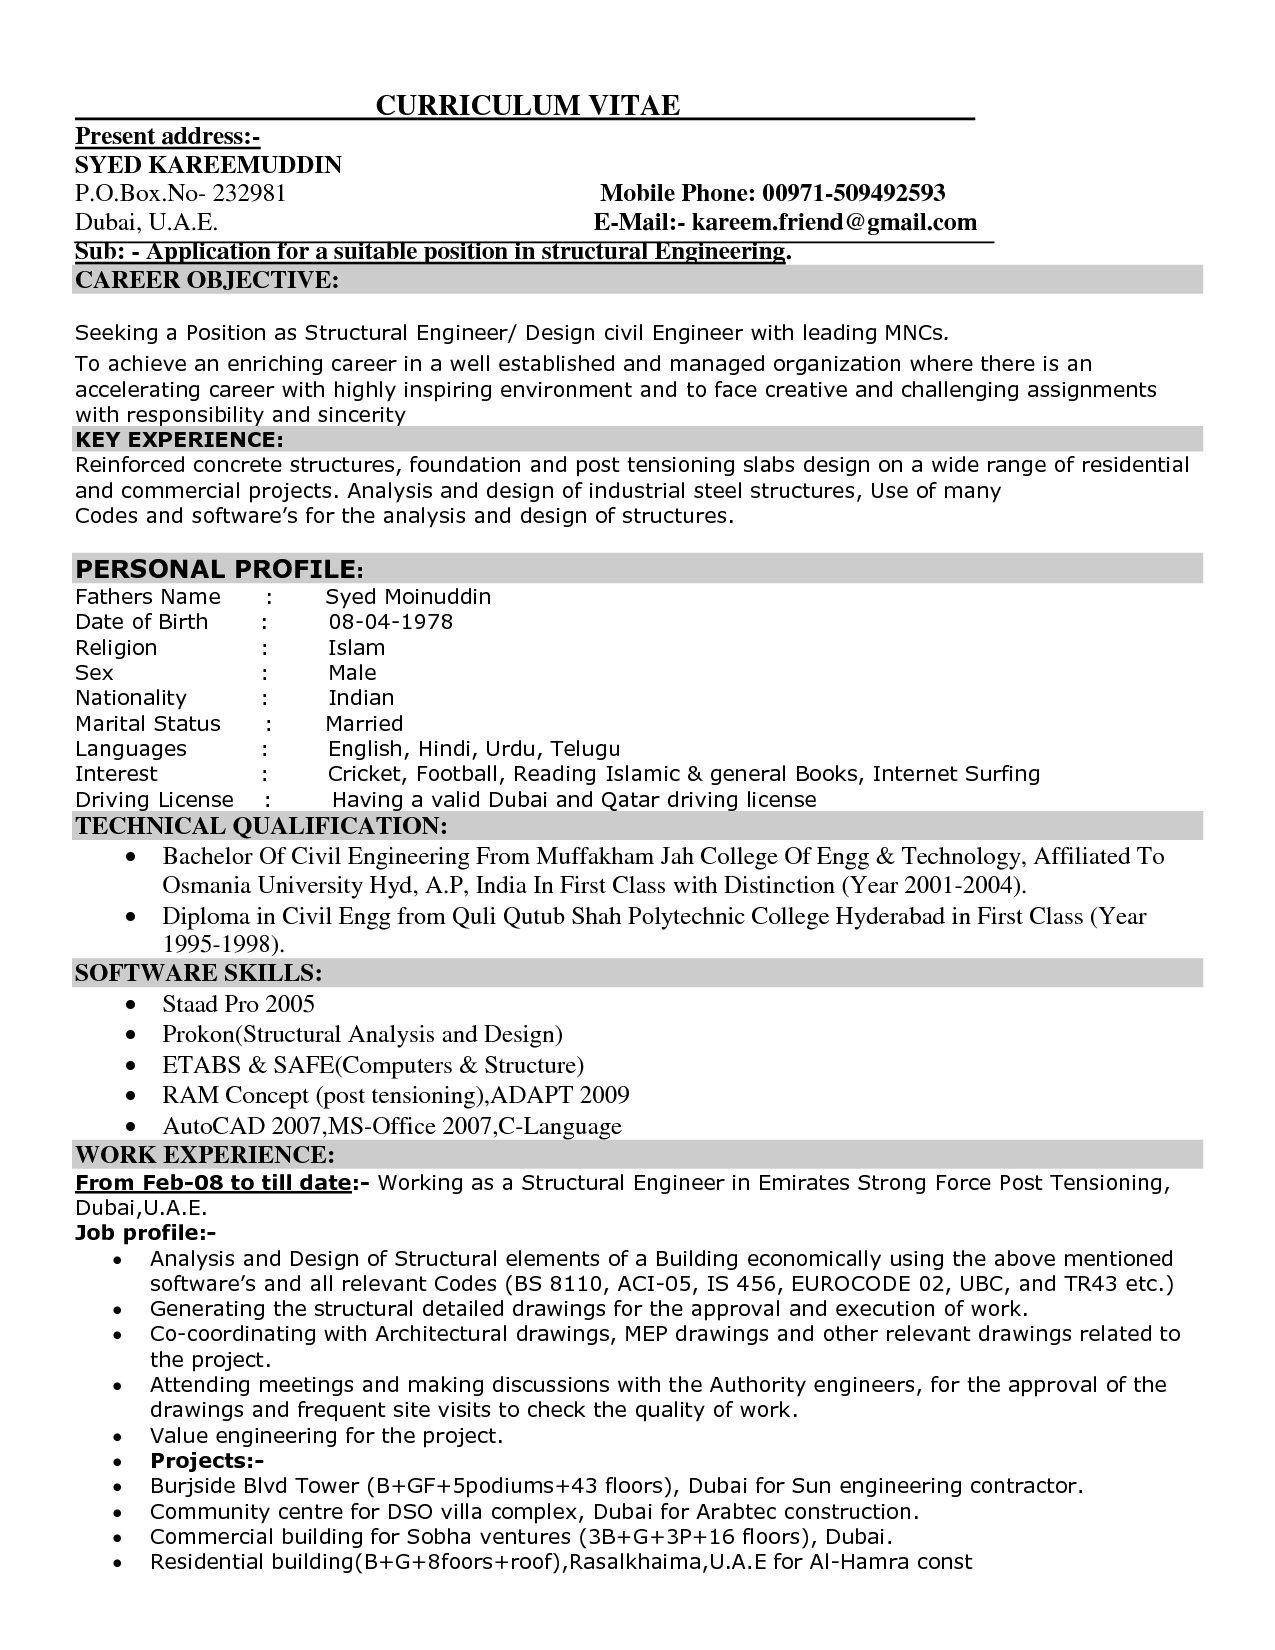 Civil Engineer Job Description Resume - http://jobresumesample.com ...